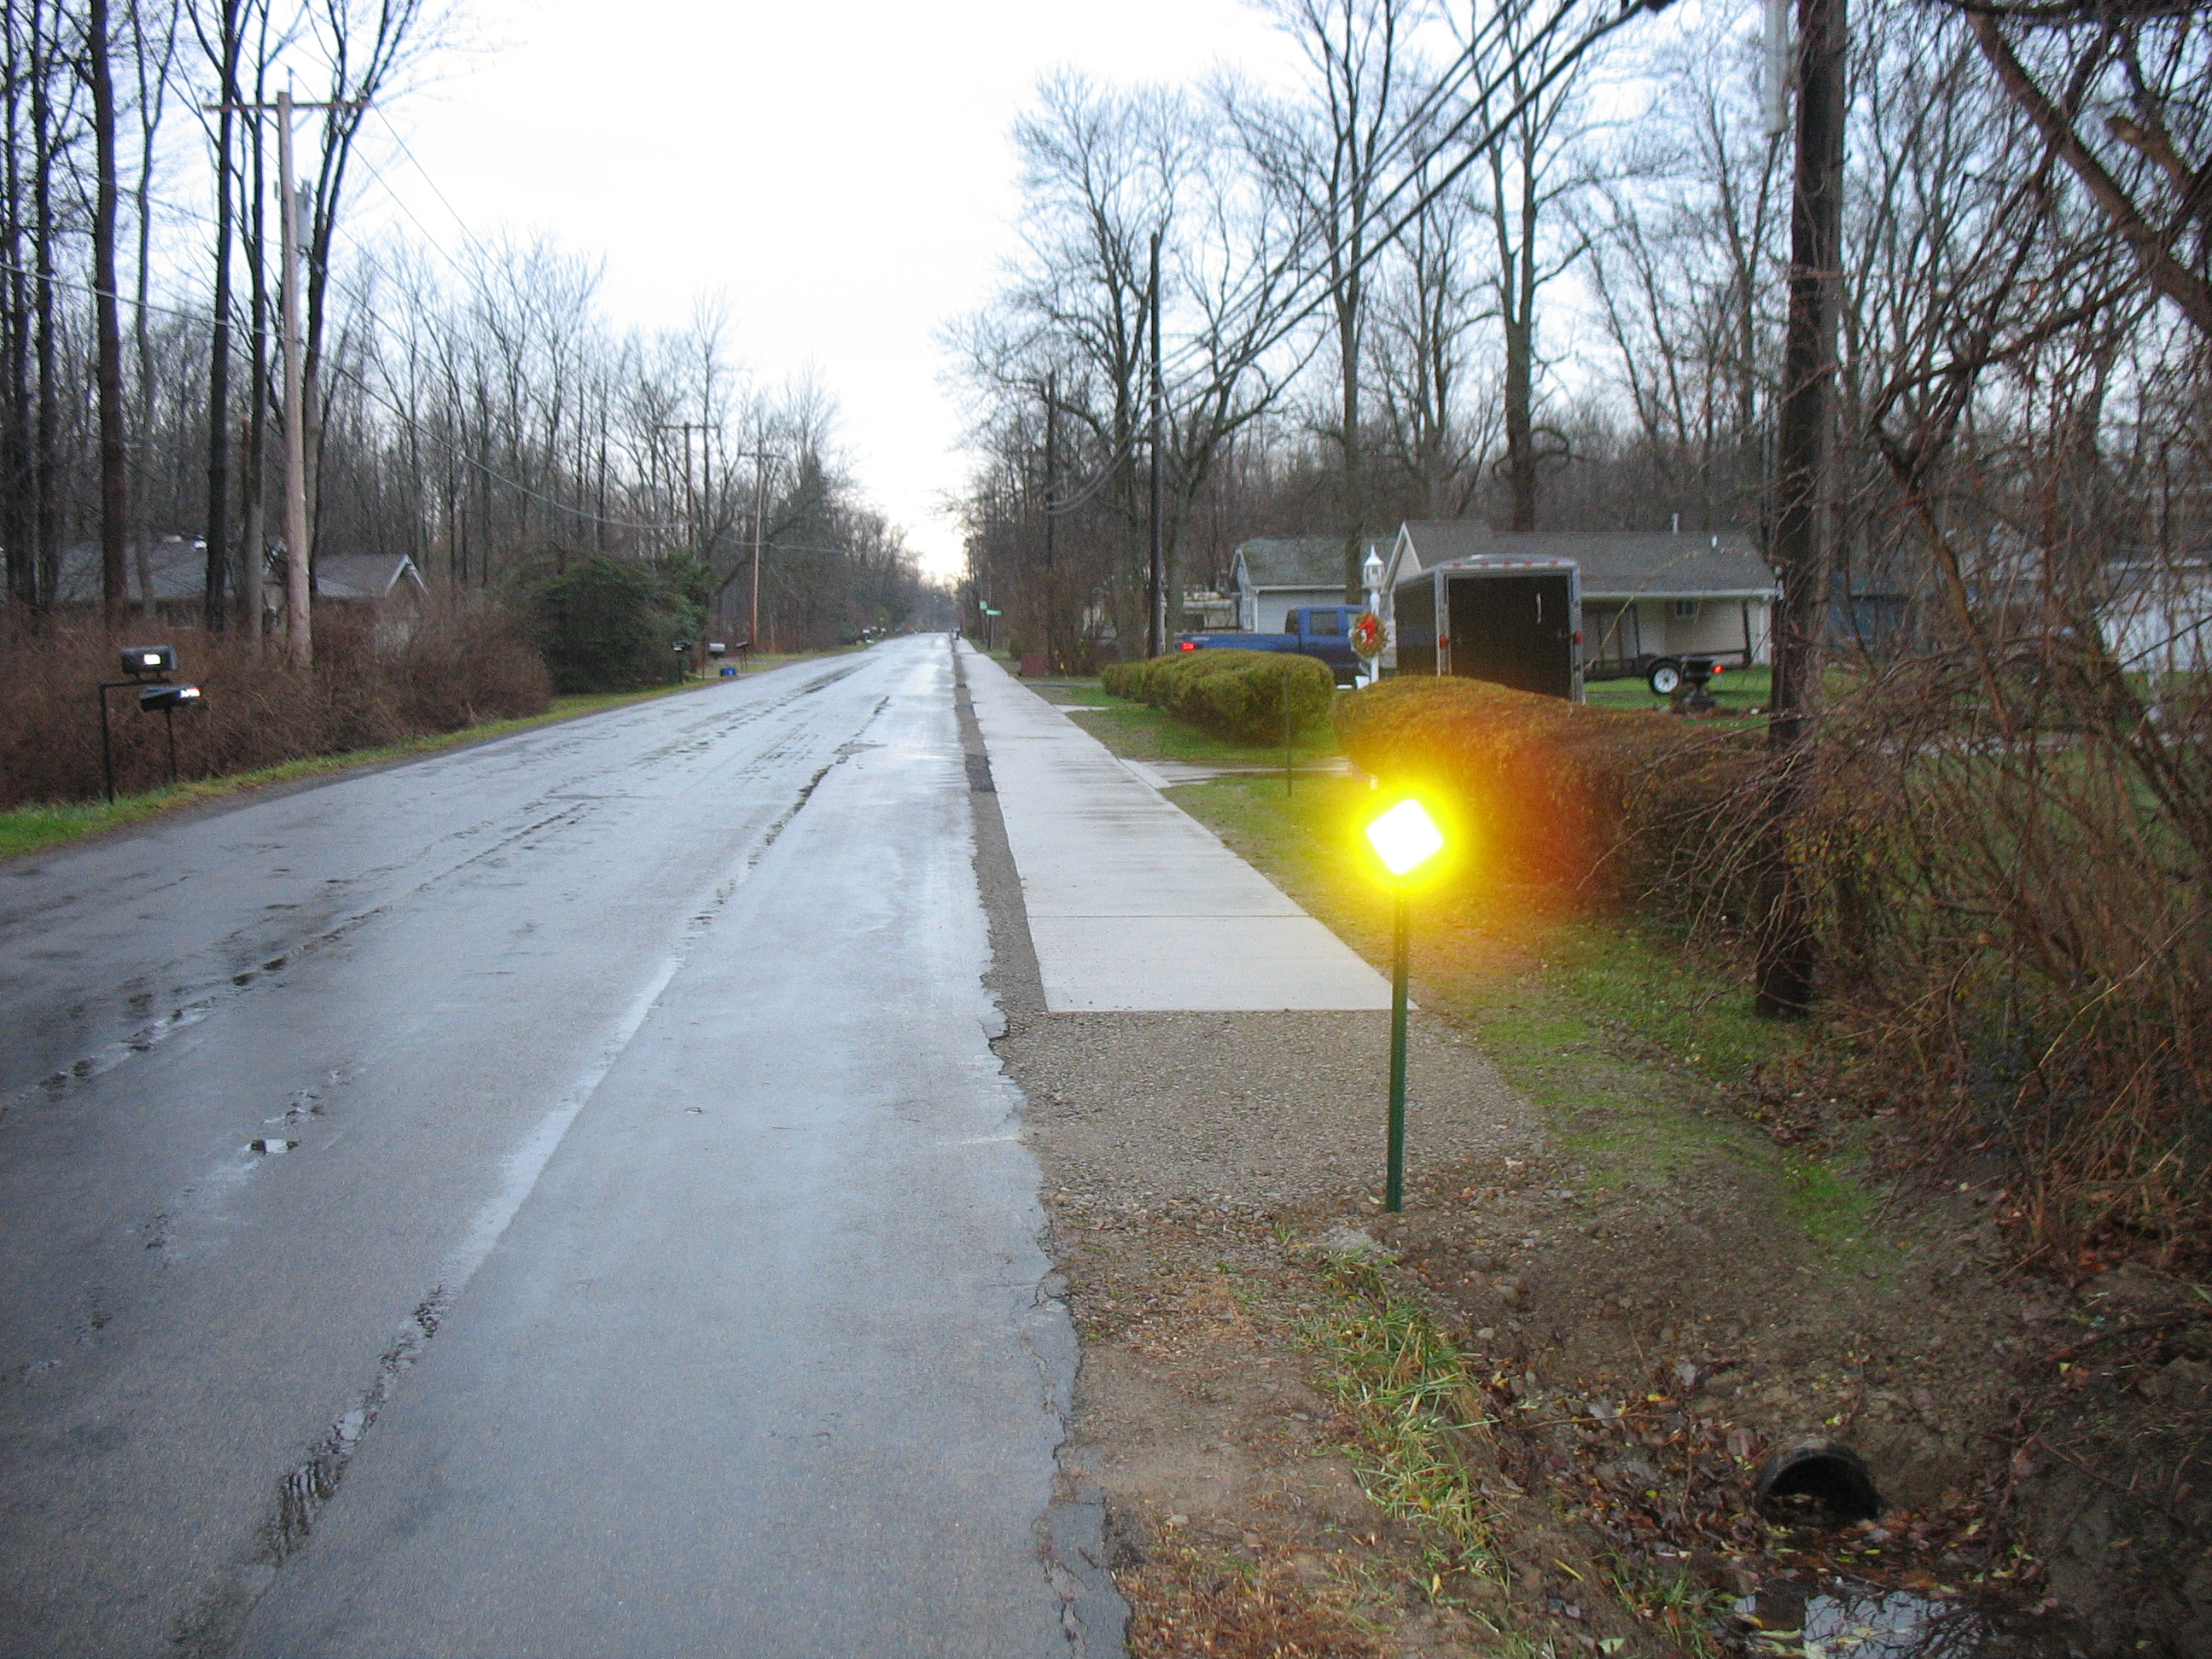 Town of Evans - Sidewalk installation project - Kennedy Street